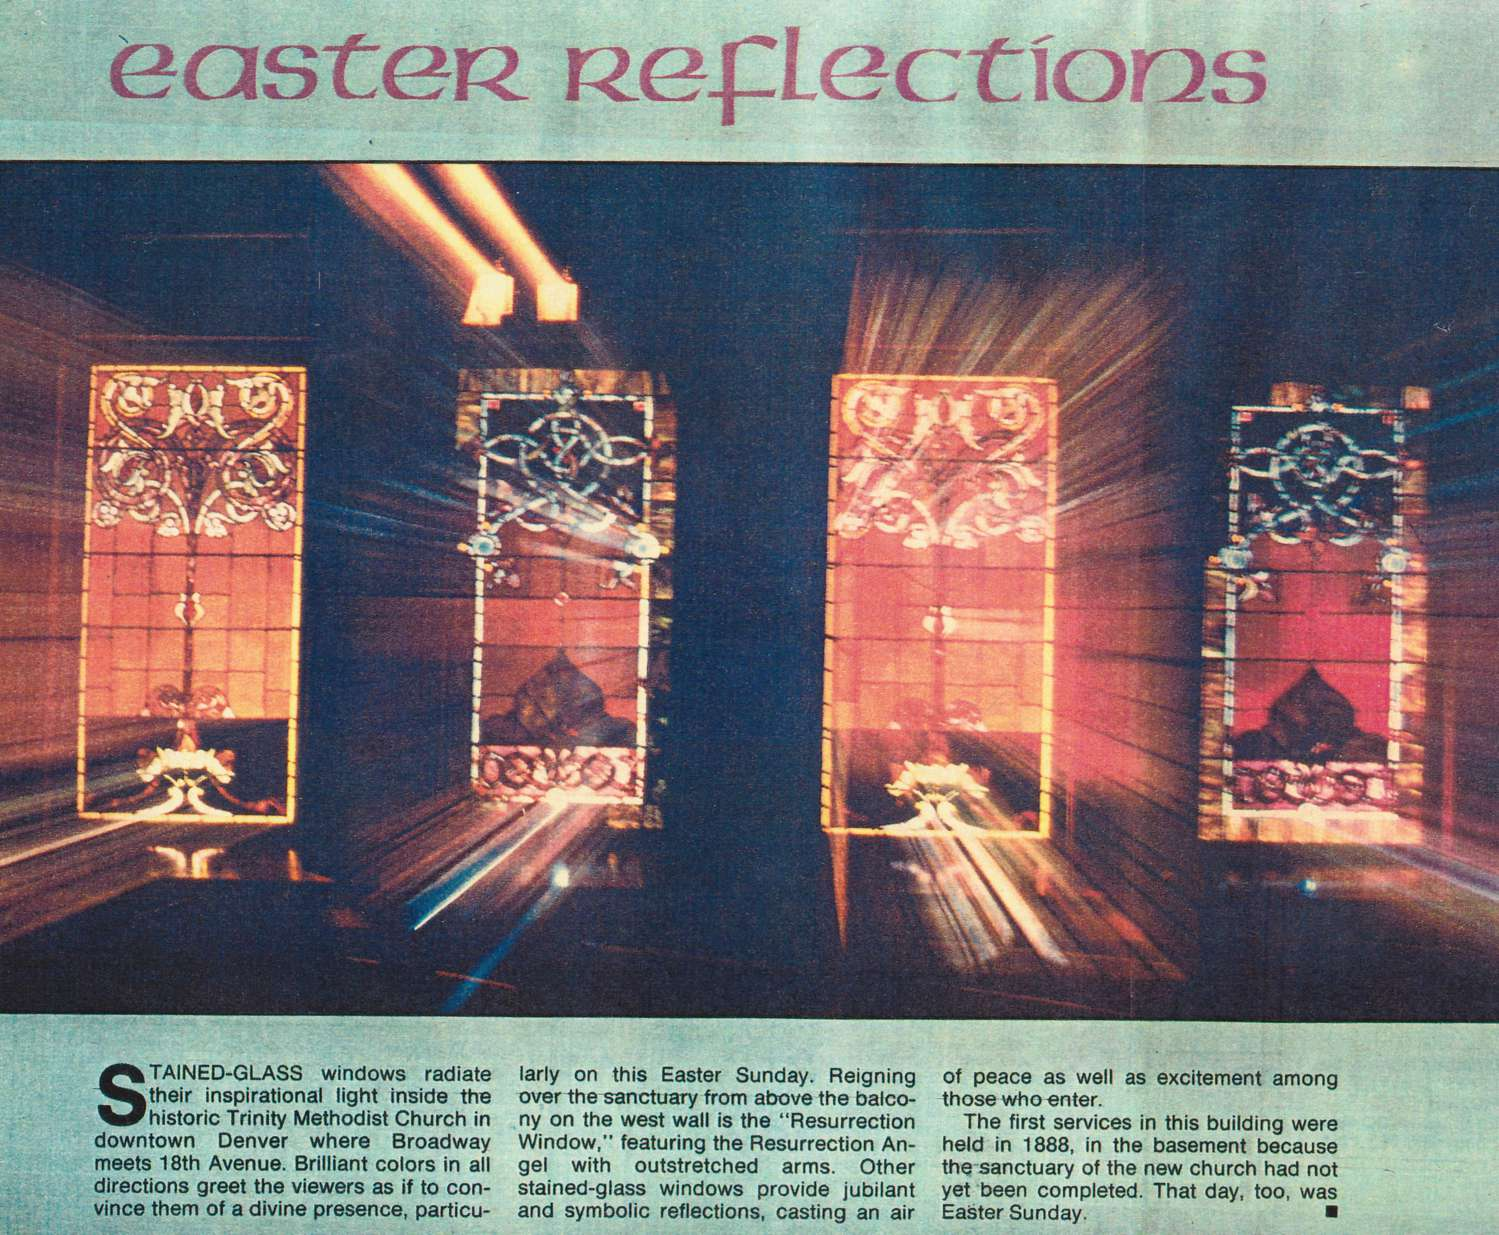 Easter Reflections